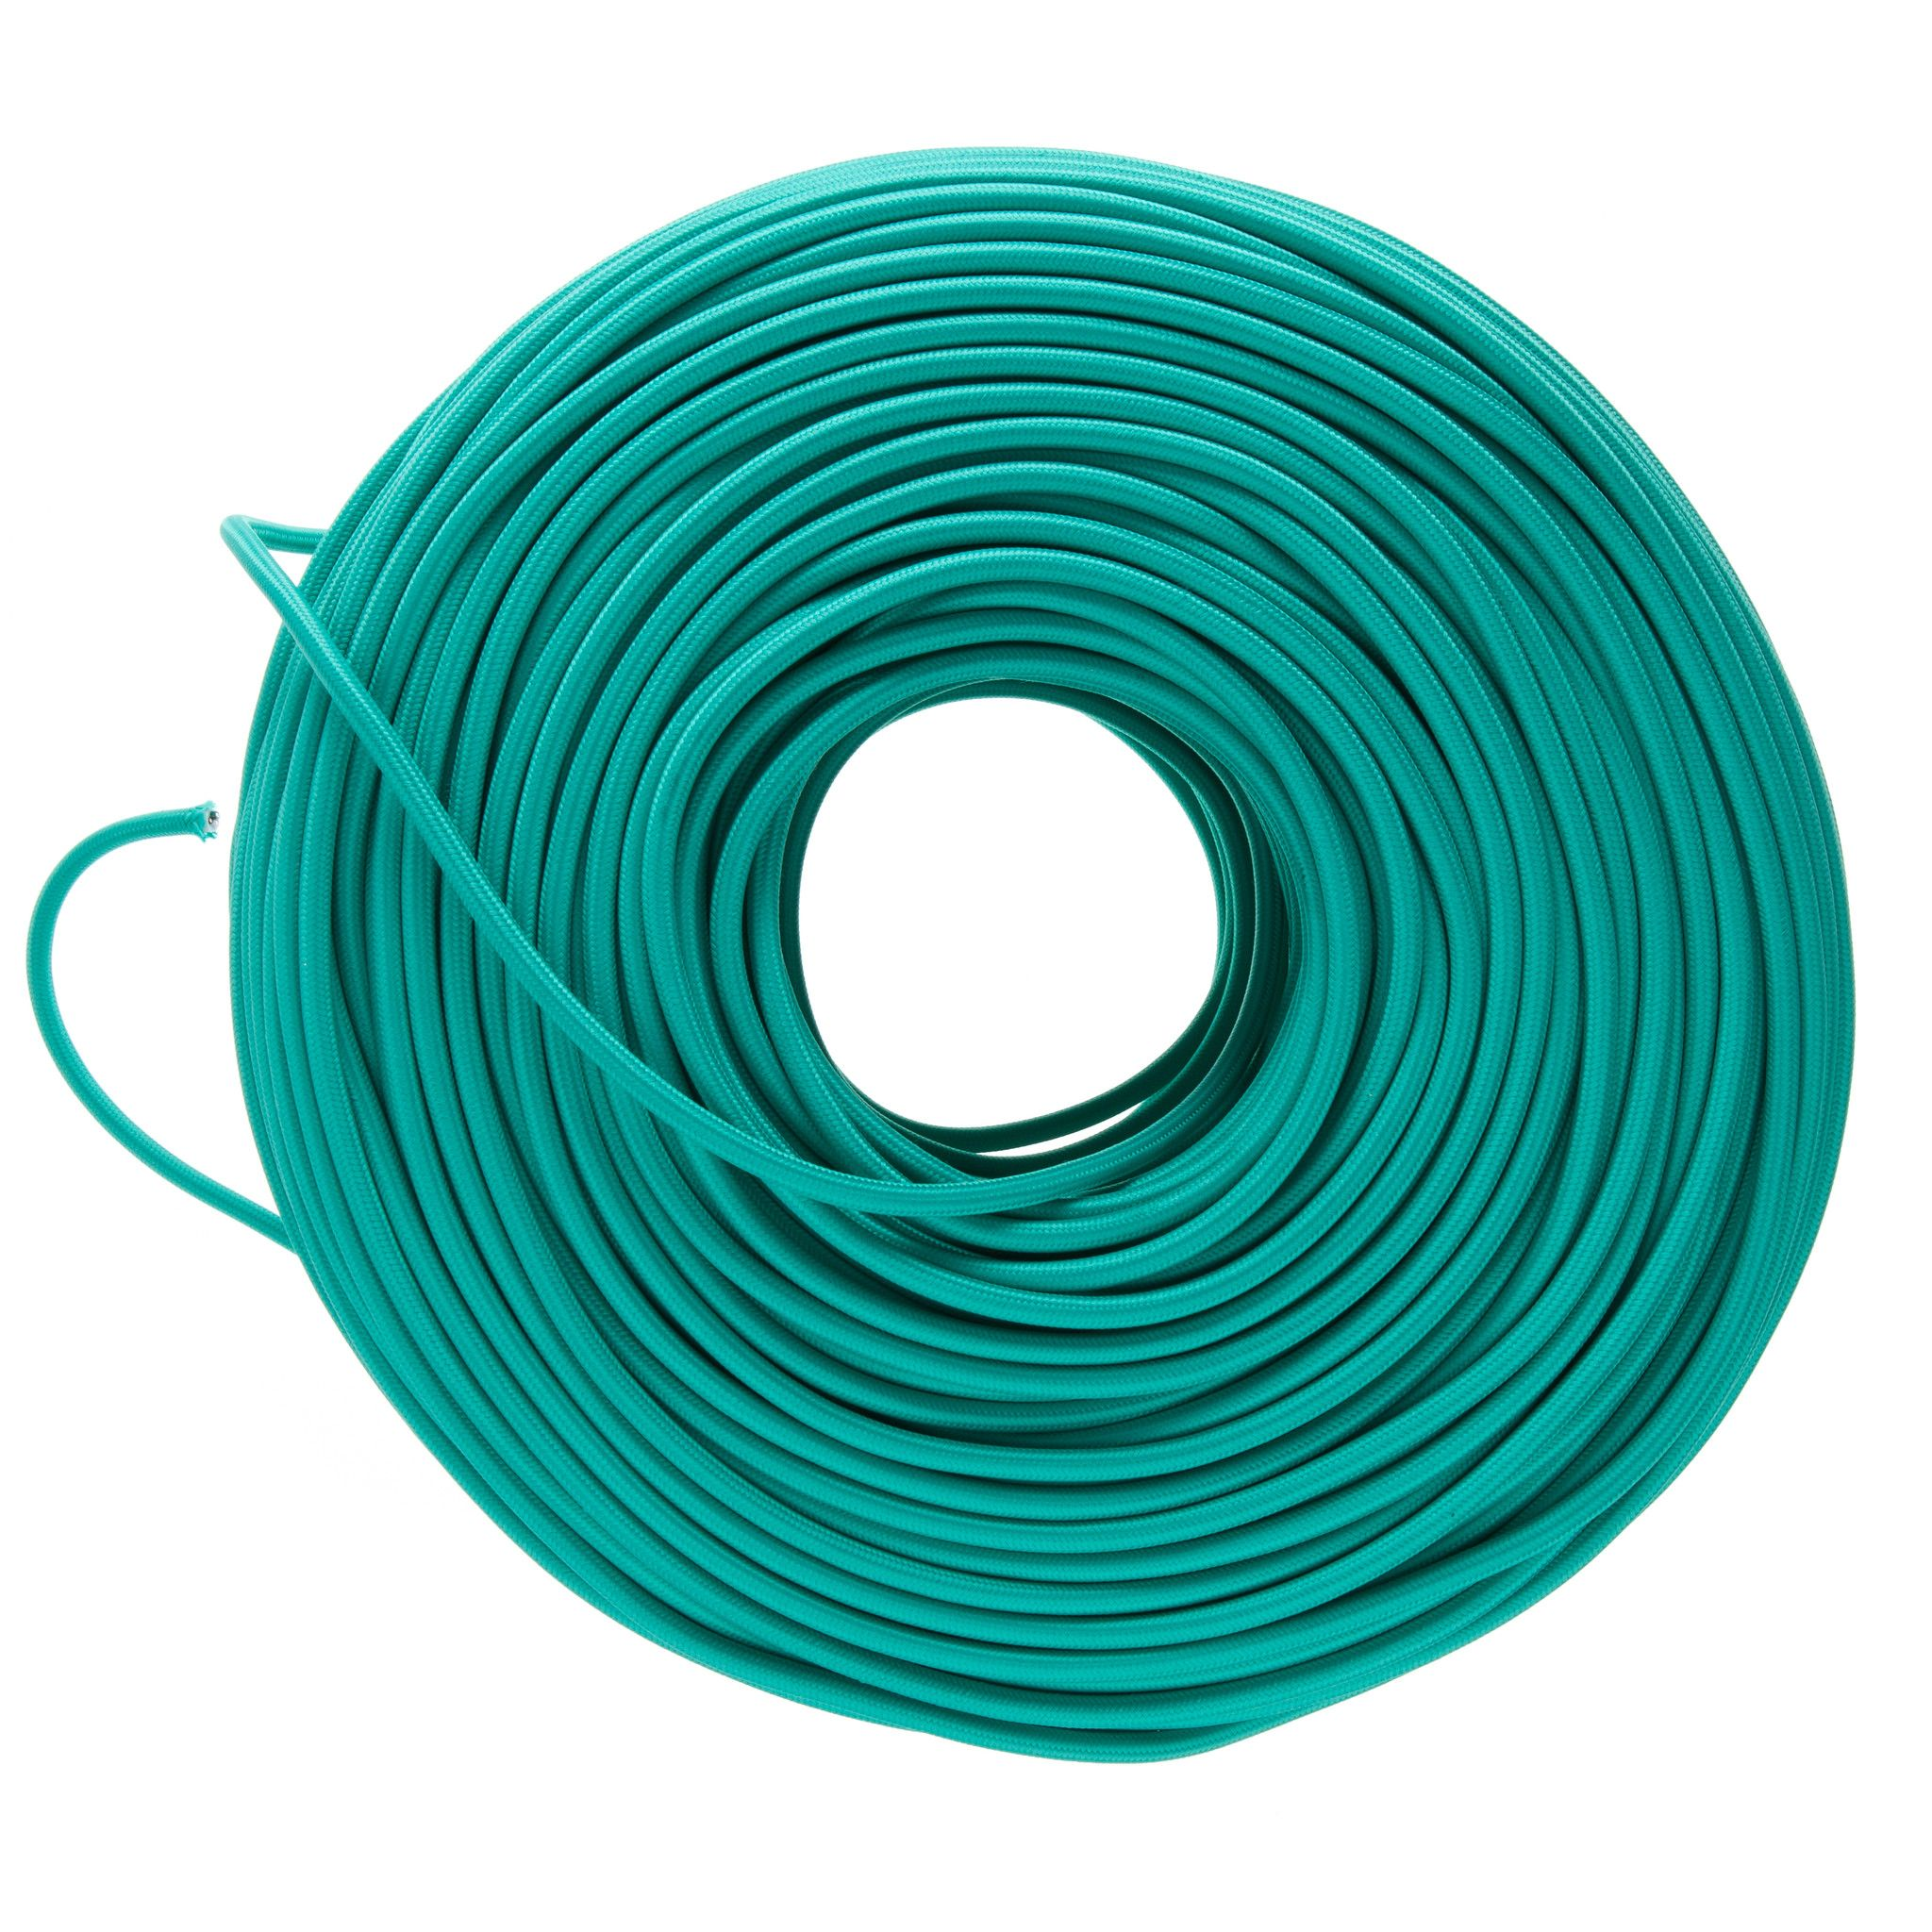 So Cord Listed 3 4 5 Conductor So Sow Cable Flexible Cored: DIY Fabric Wire By The Foot - Teal